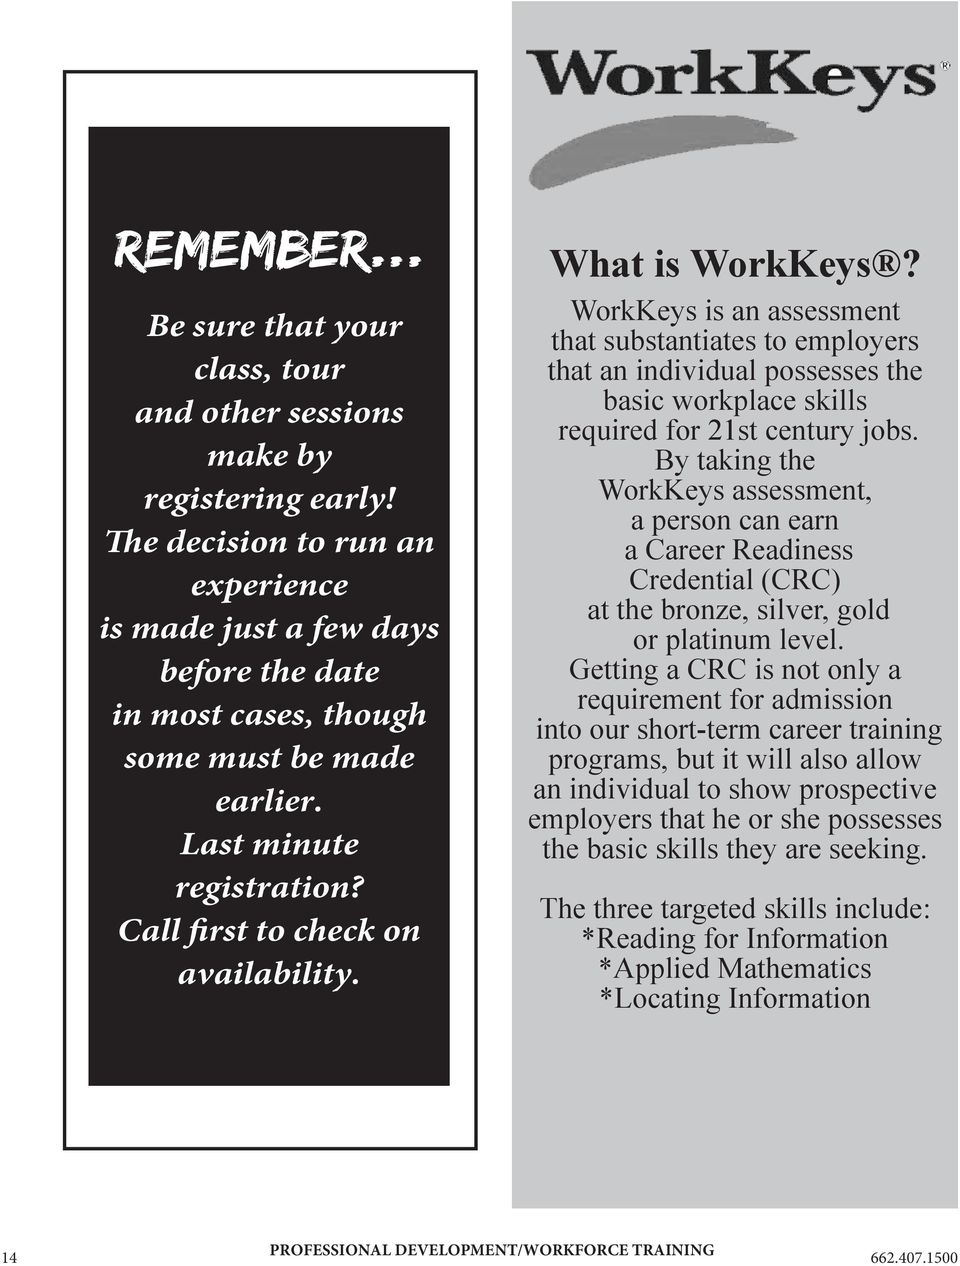 What is WorkKeys? WorkKeys is an assessment that substantiates to employers that an individual possesses the basic workplace skills required for 21st century jobs.